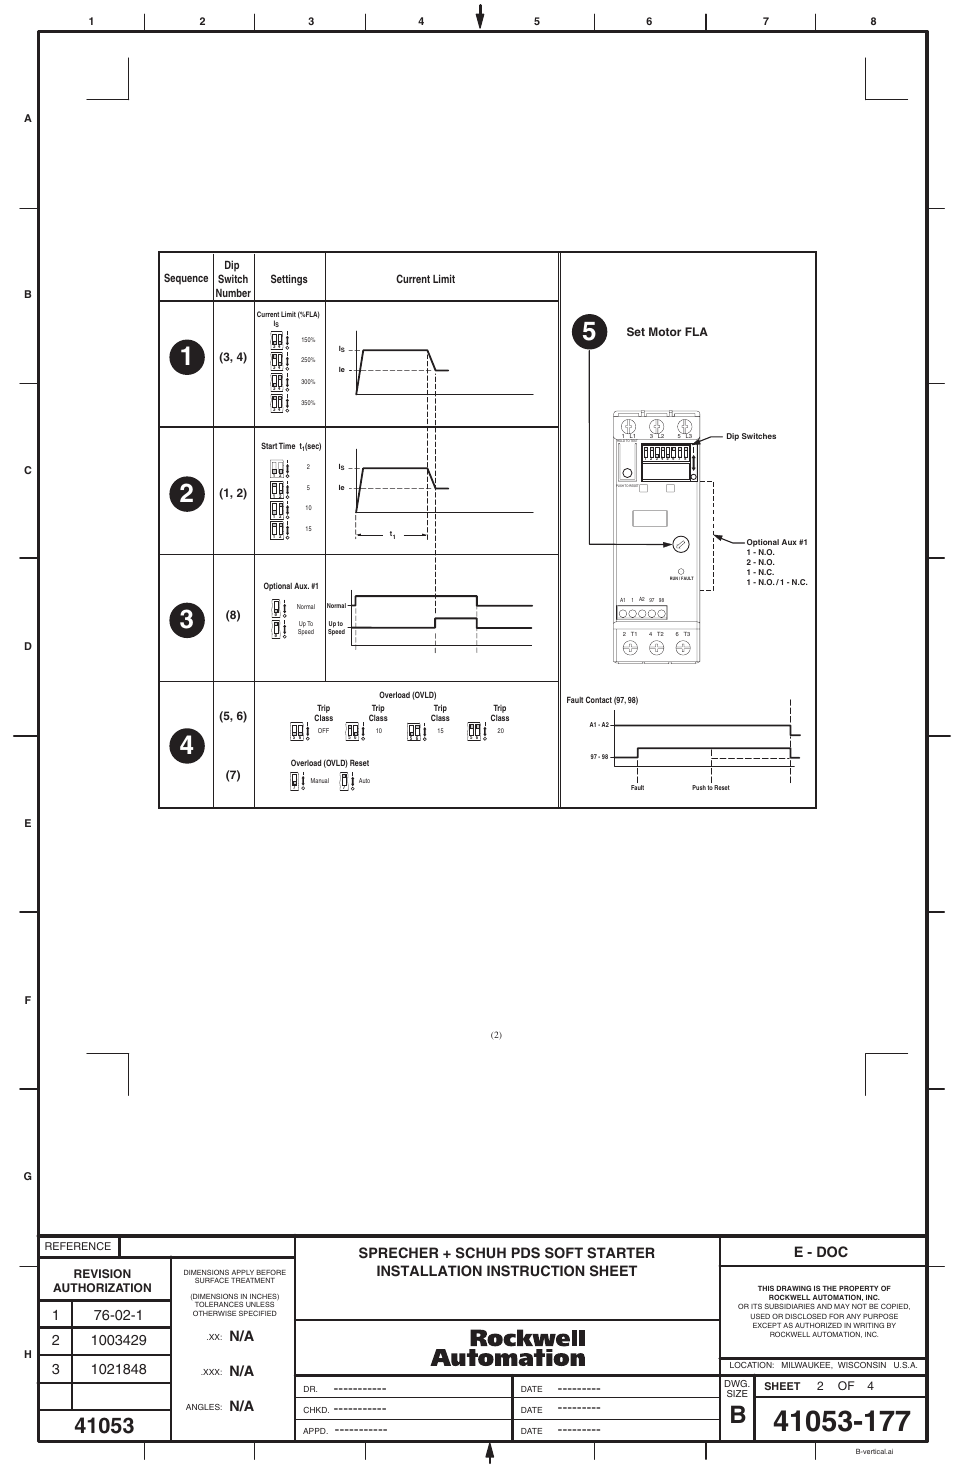 Rockwell Automation Soft Start Wiring Diagram - Wiring Circuit •